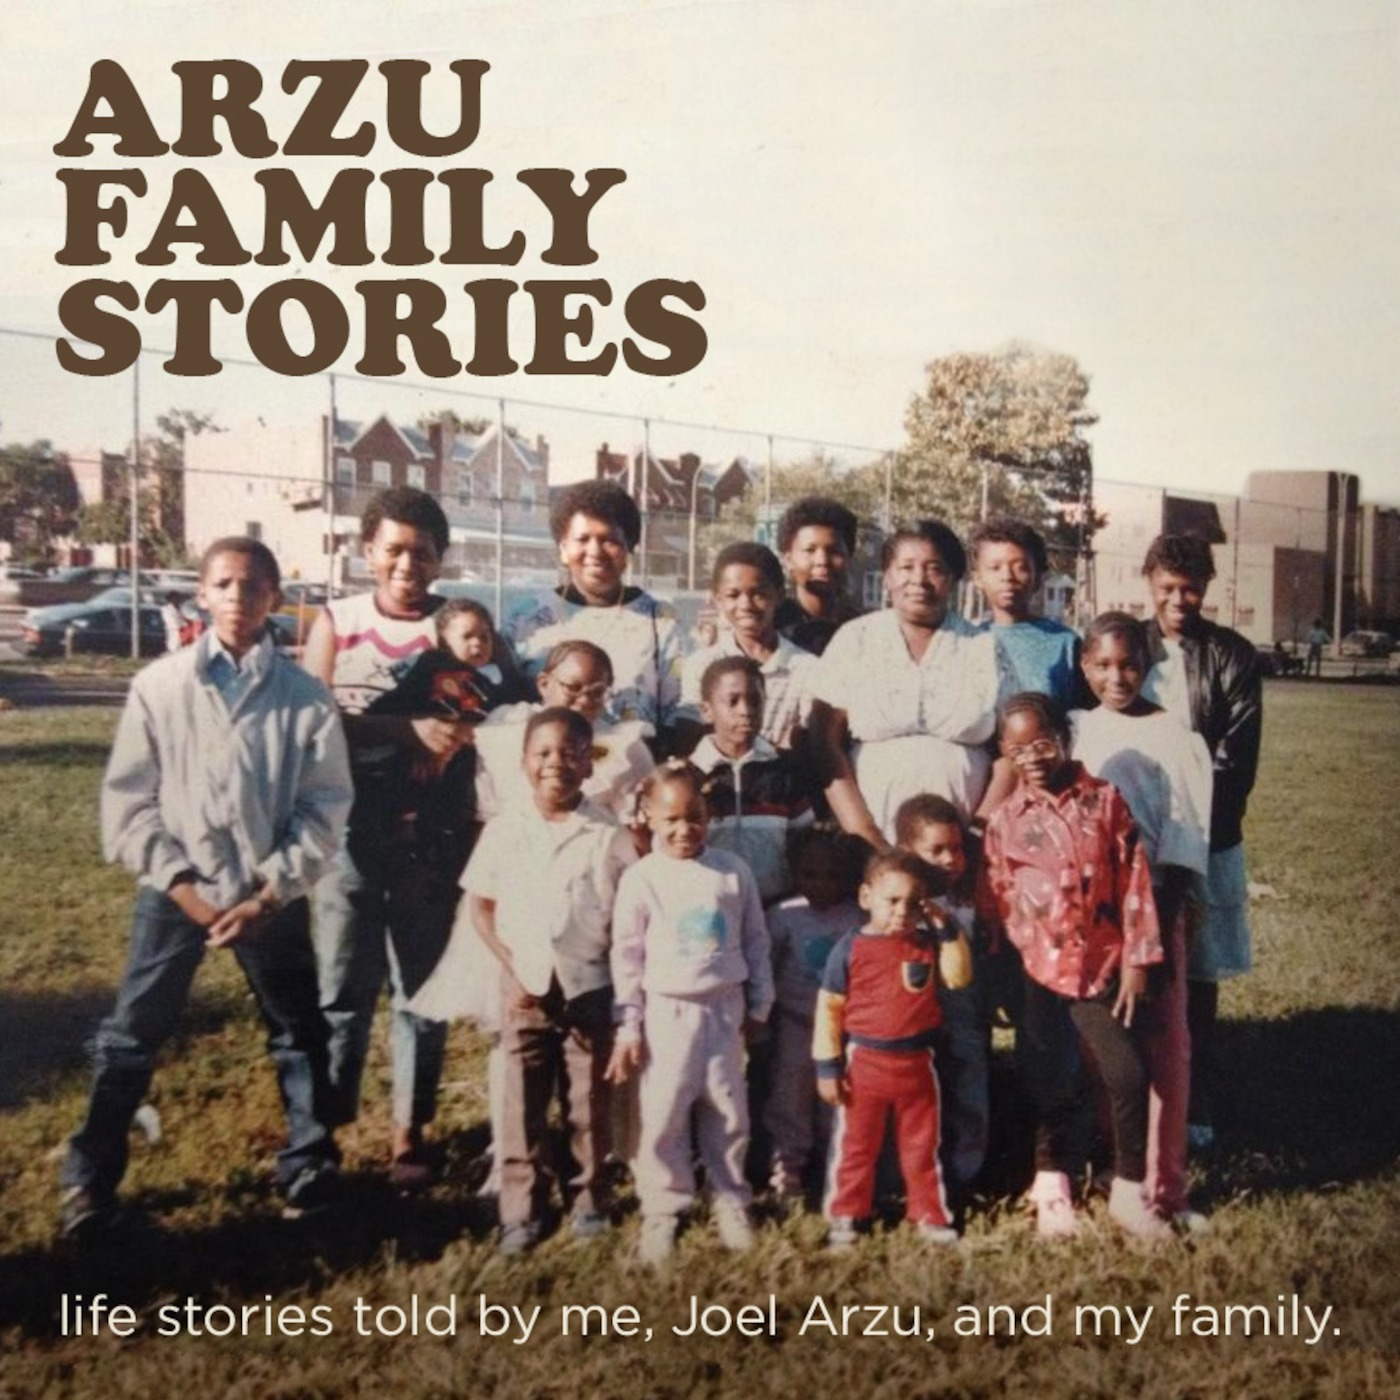 Arzu Family Stories